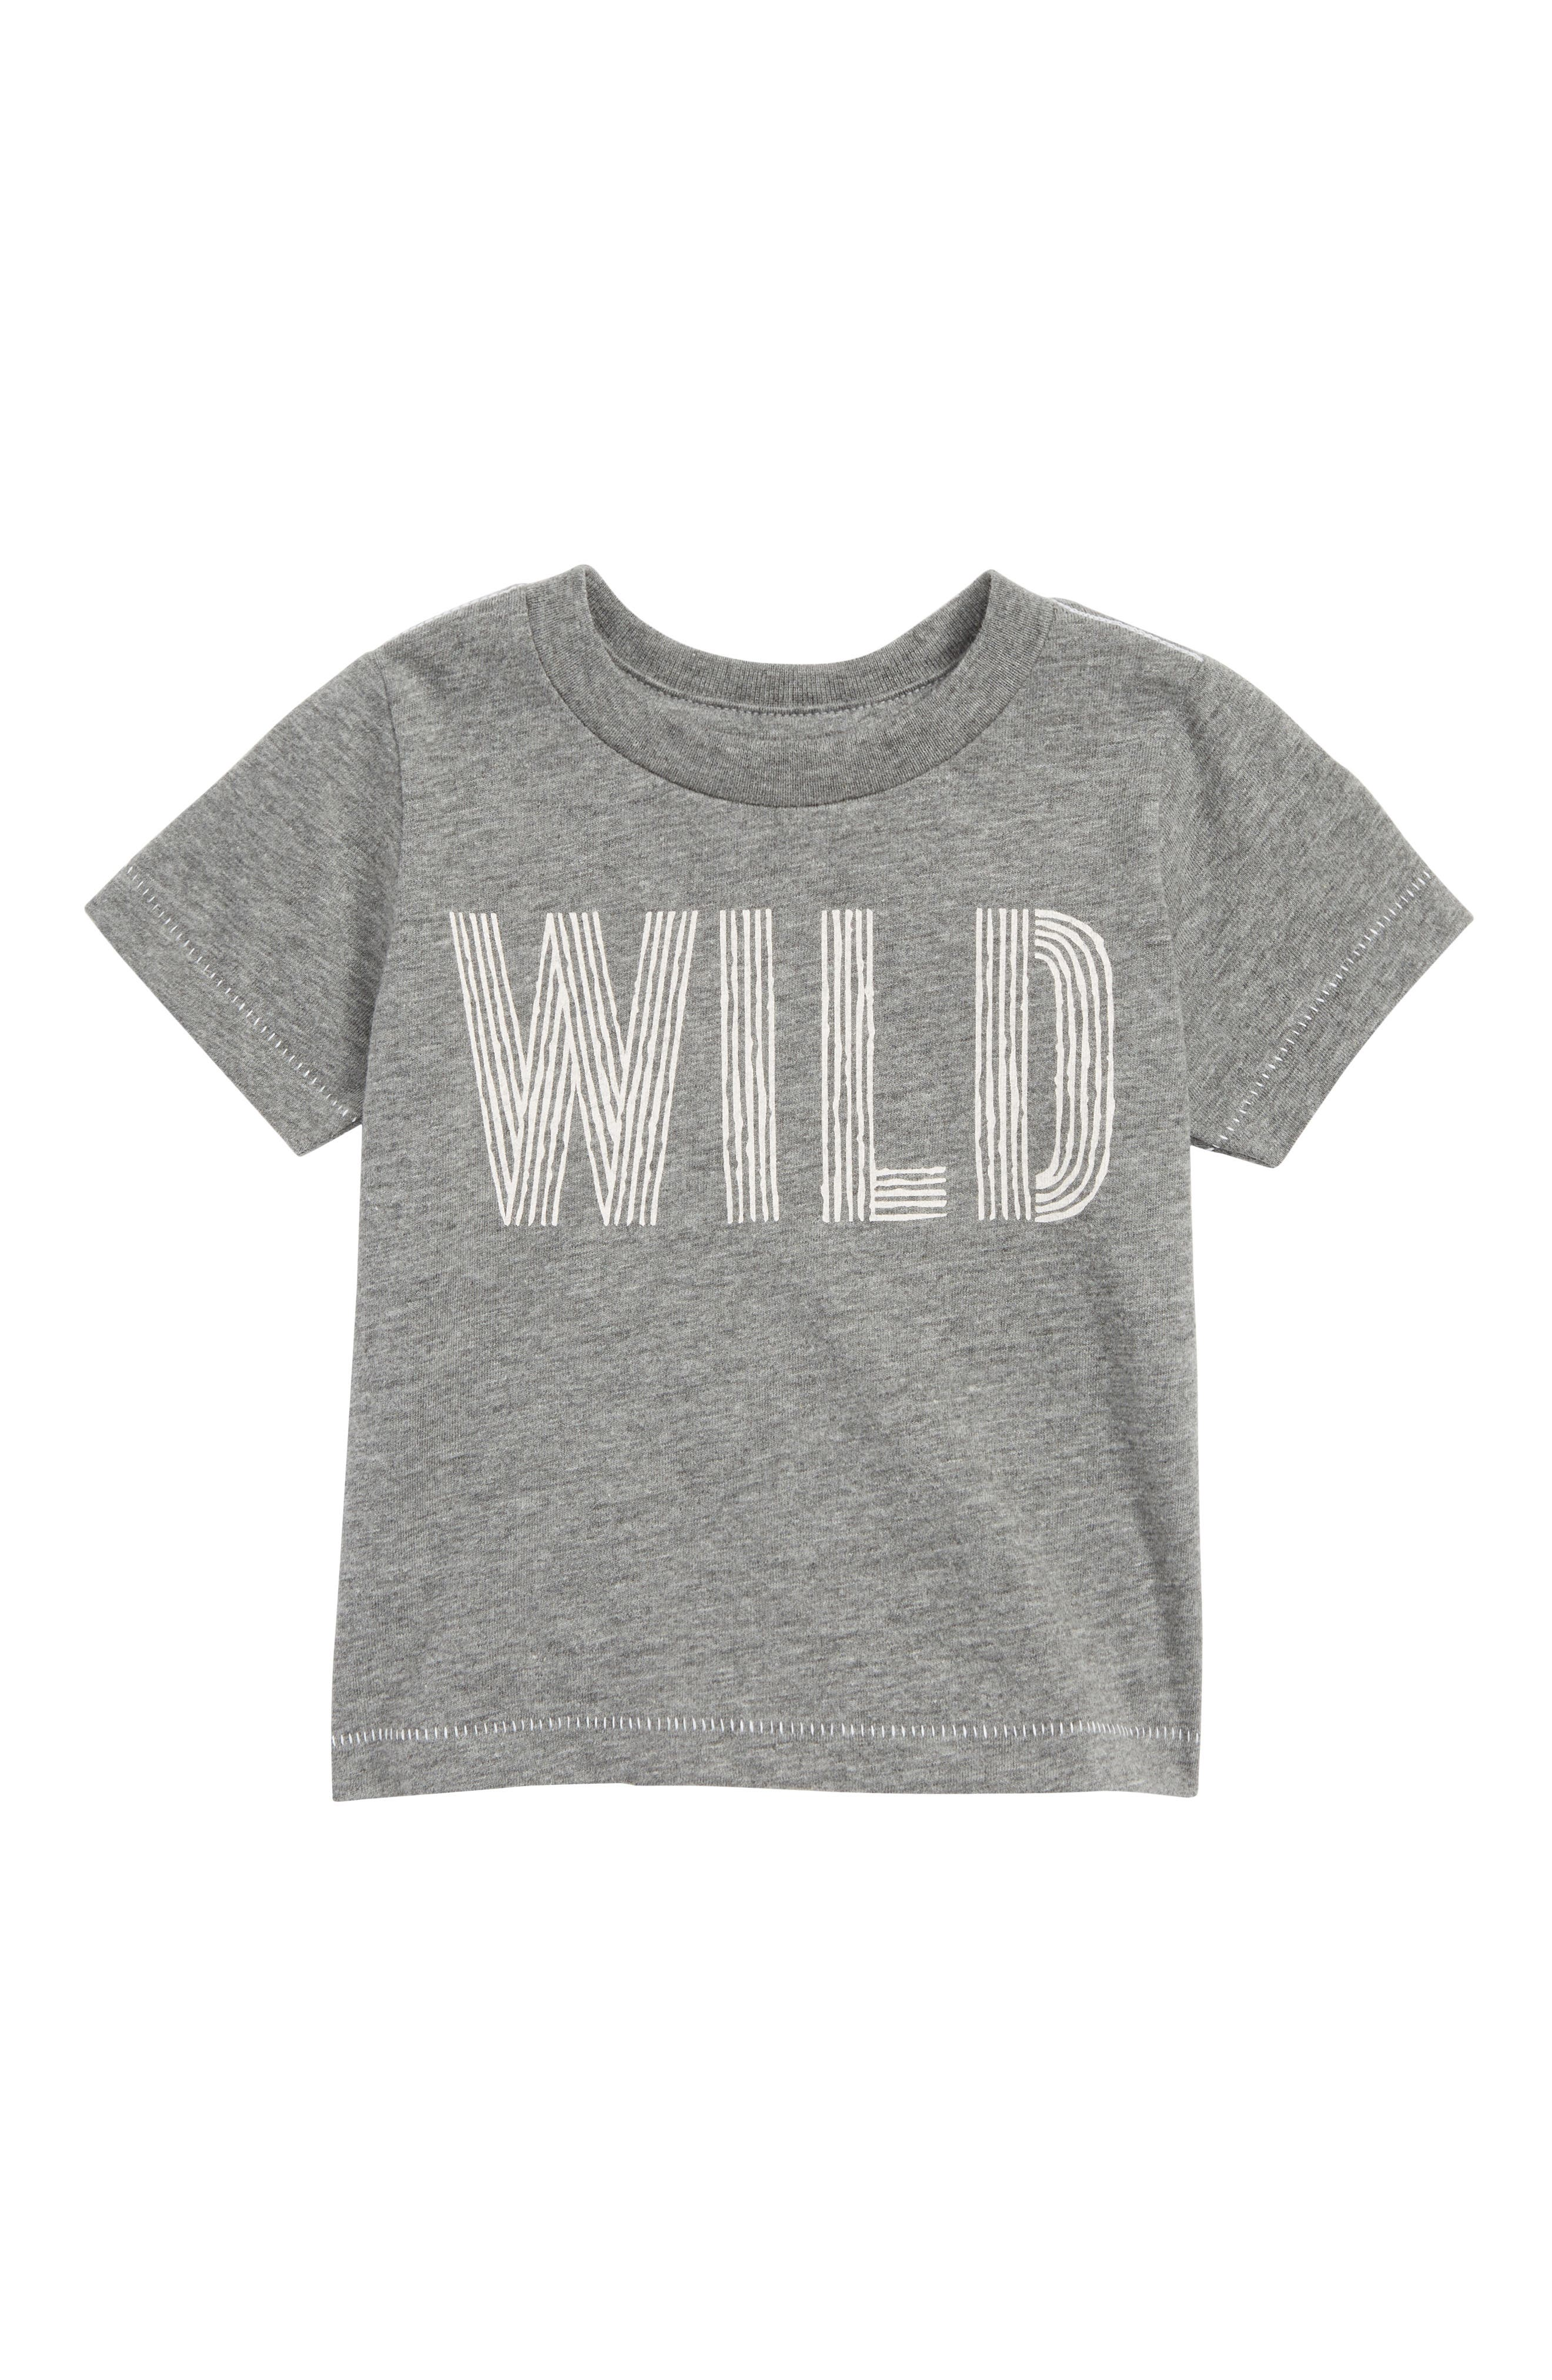 Peek Wild T-Shirt,                         Main,                         color, 031